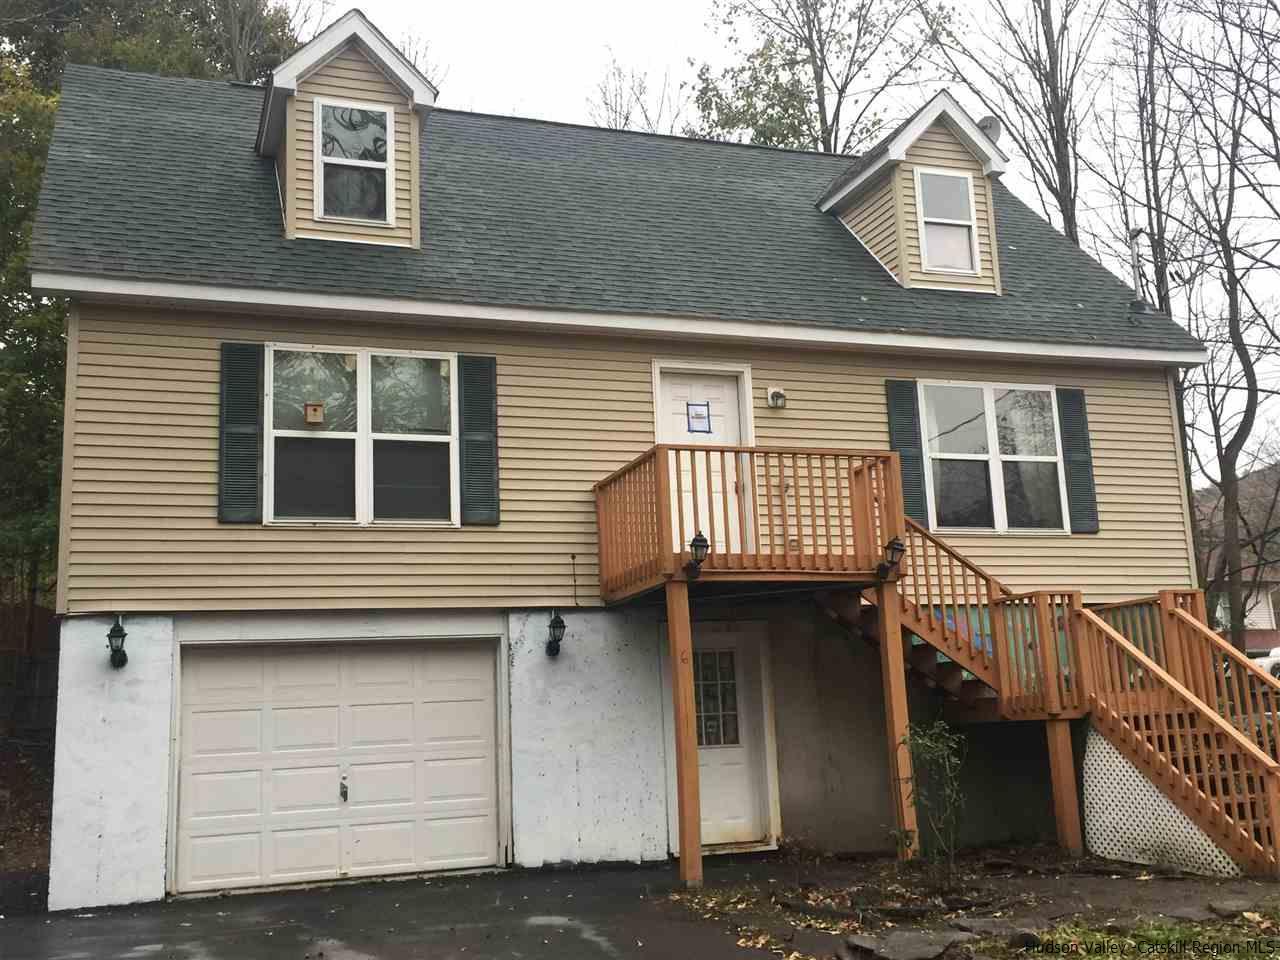 Single Family Home for Sale at 6 South Street 6 South Street Phoenicia, New York 12464 United States